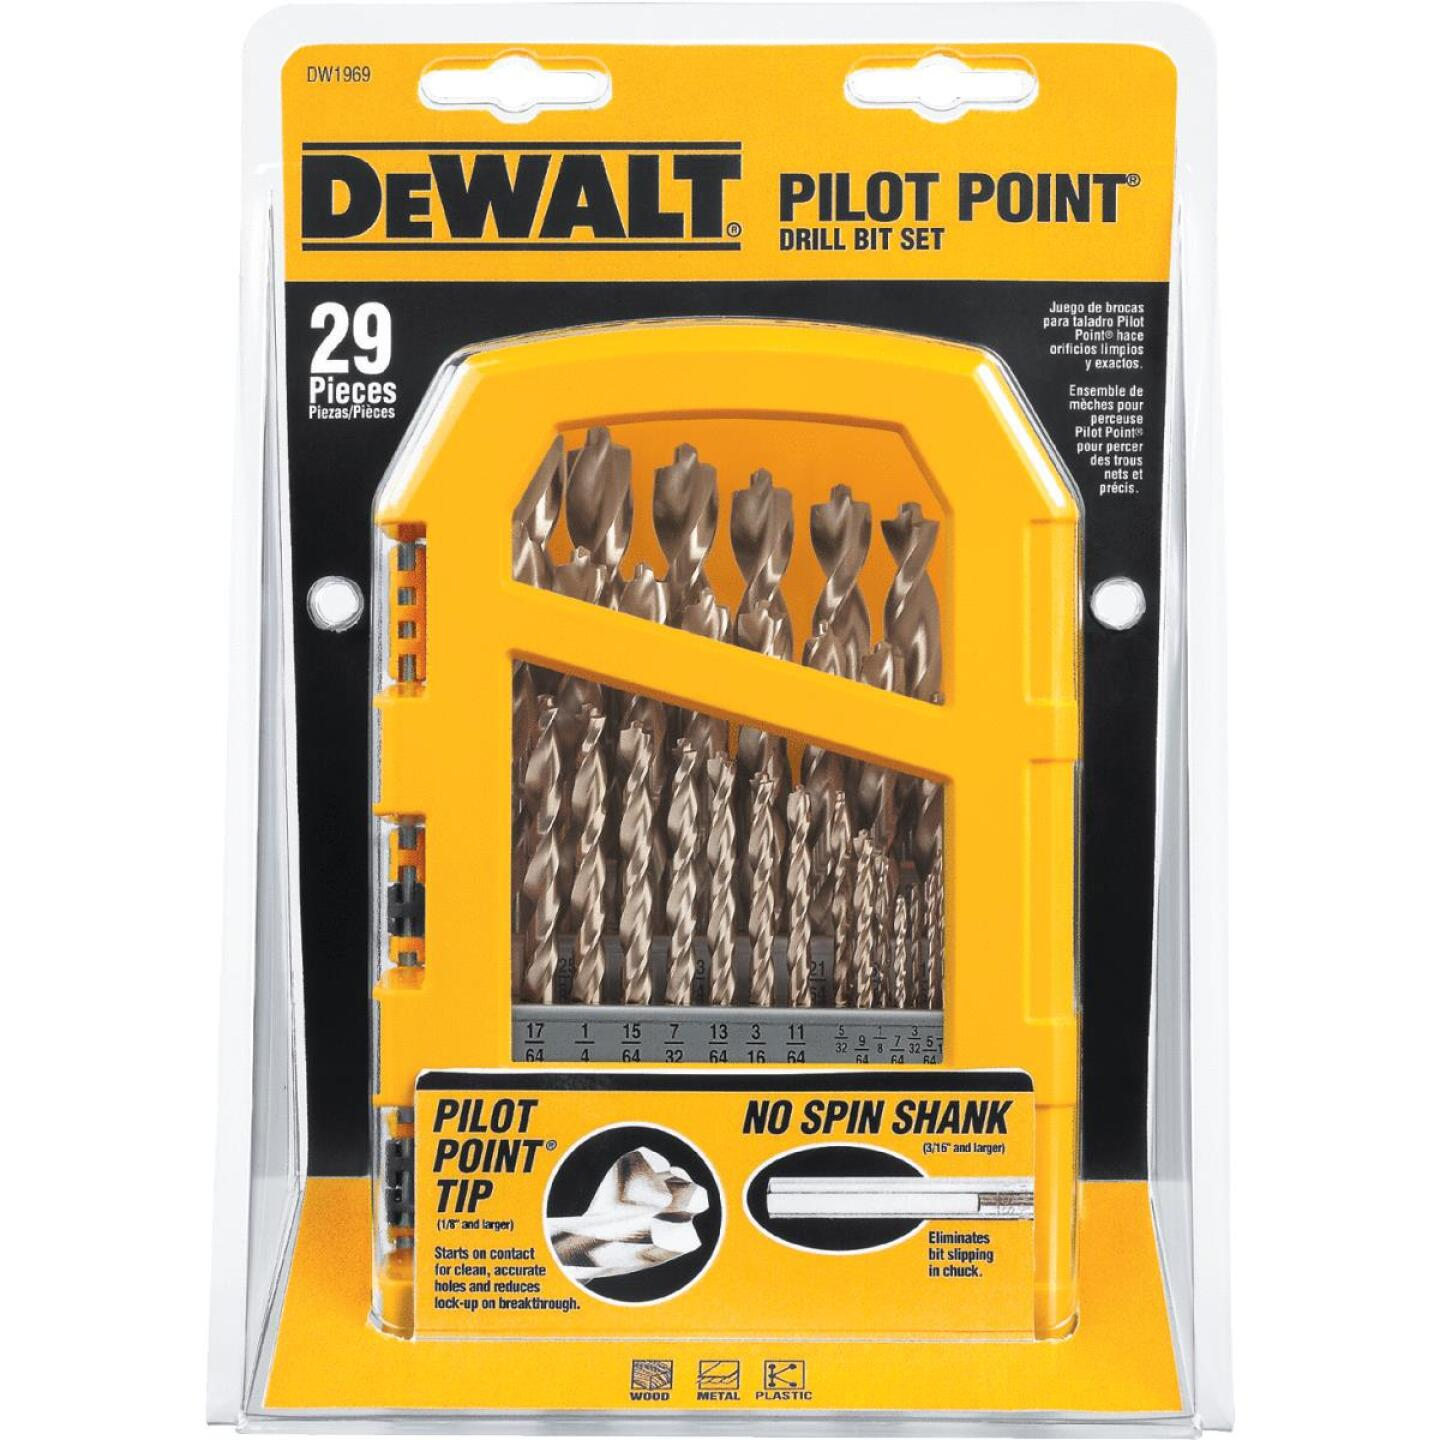 DeWalt 29-Piece Gold Ferrous Pilot Point Drill Bit Set, 1/16 In. thru 9/32 In. Image 2